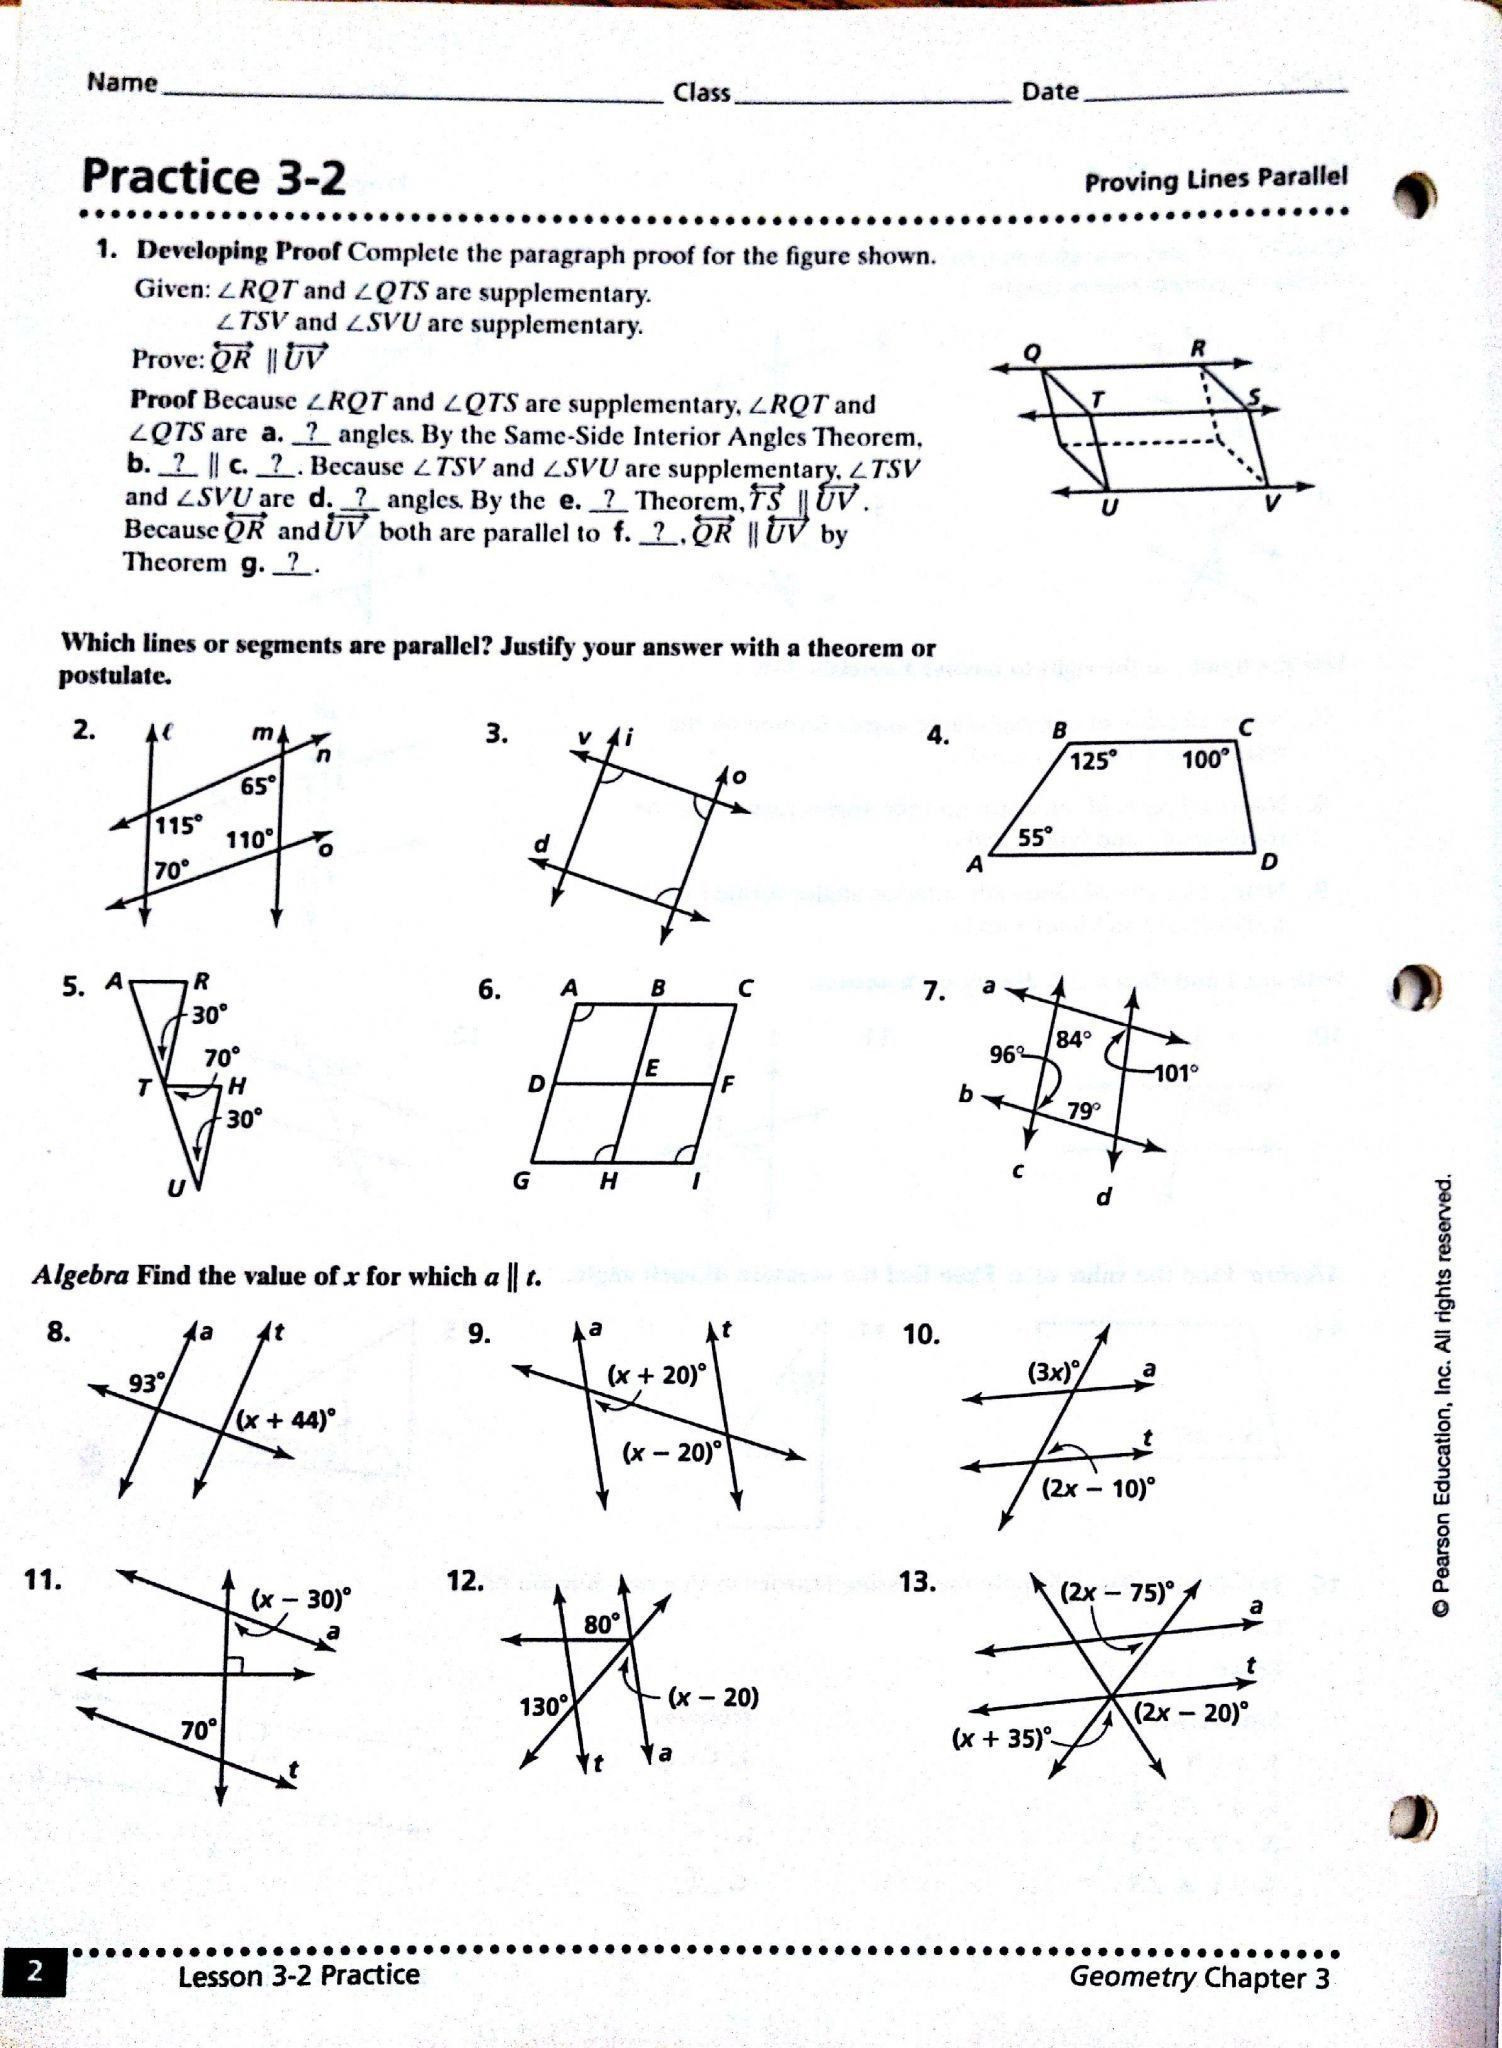 Congruent Triangles Worksheet with Answers Pin On Printable Blank Worksheet Template